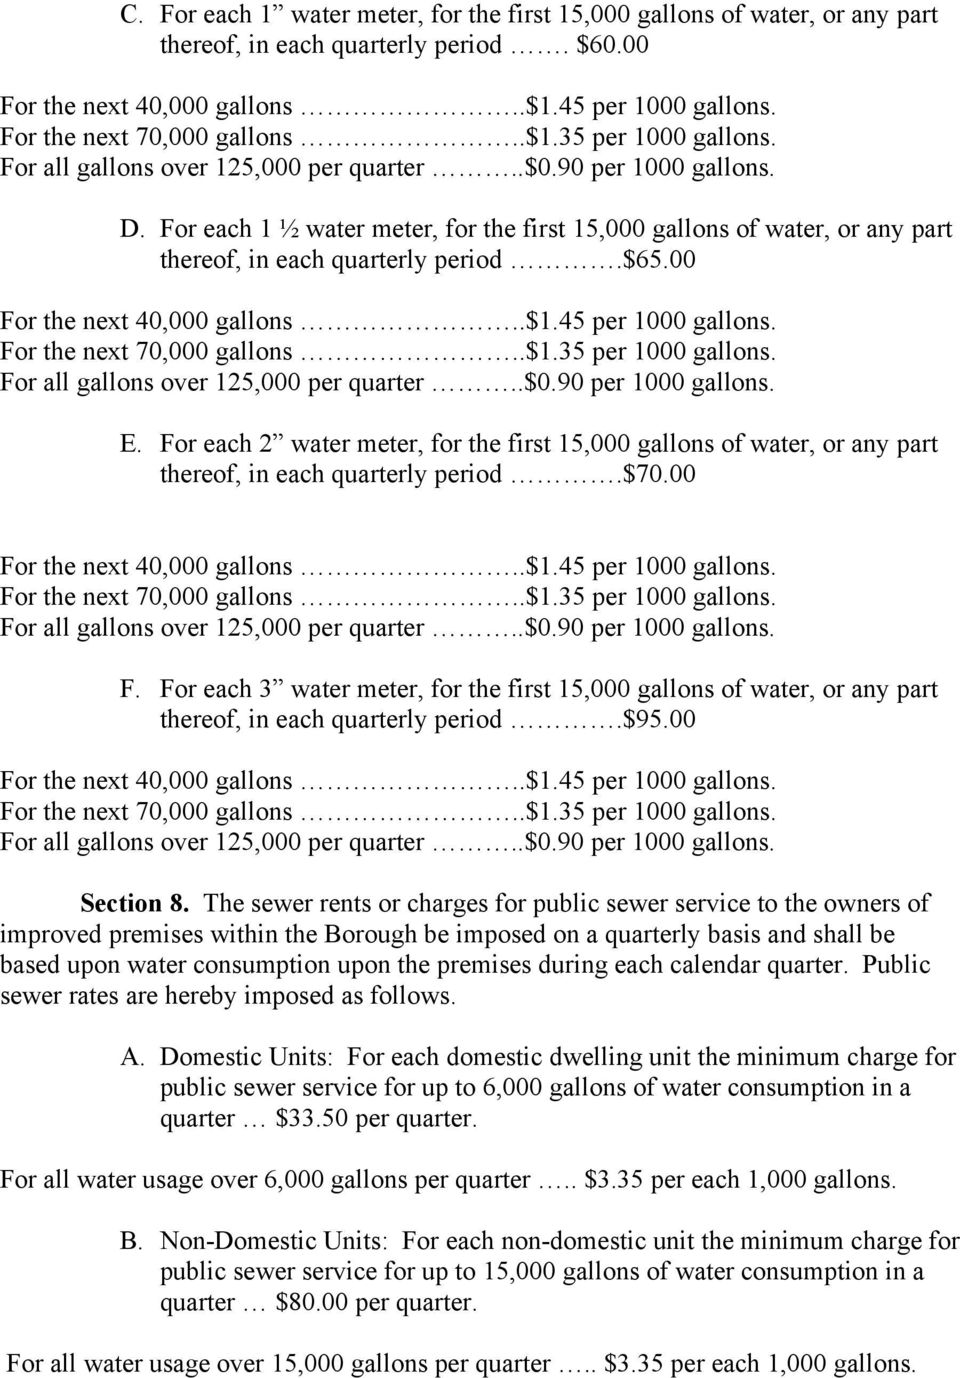 For each 1 ½ water meter, for the first 15,000 gallons of water, or any part thereof, in each quarterly period.$65.00 For the next 40,000 gallons..$1.45 per 1000 gallons. For the next 70,000 gallons.